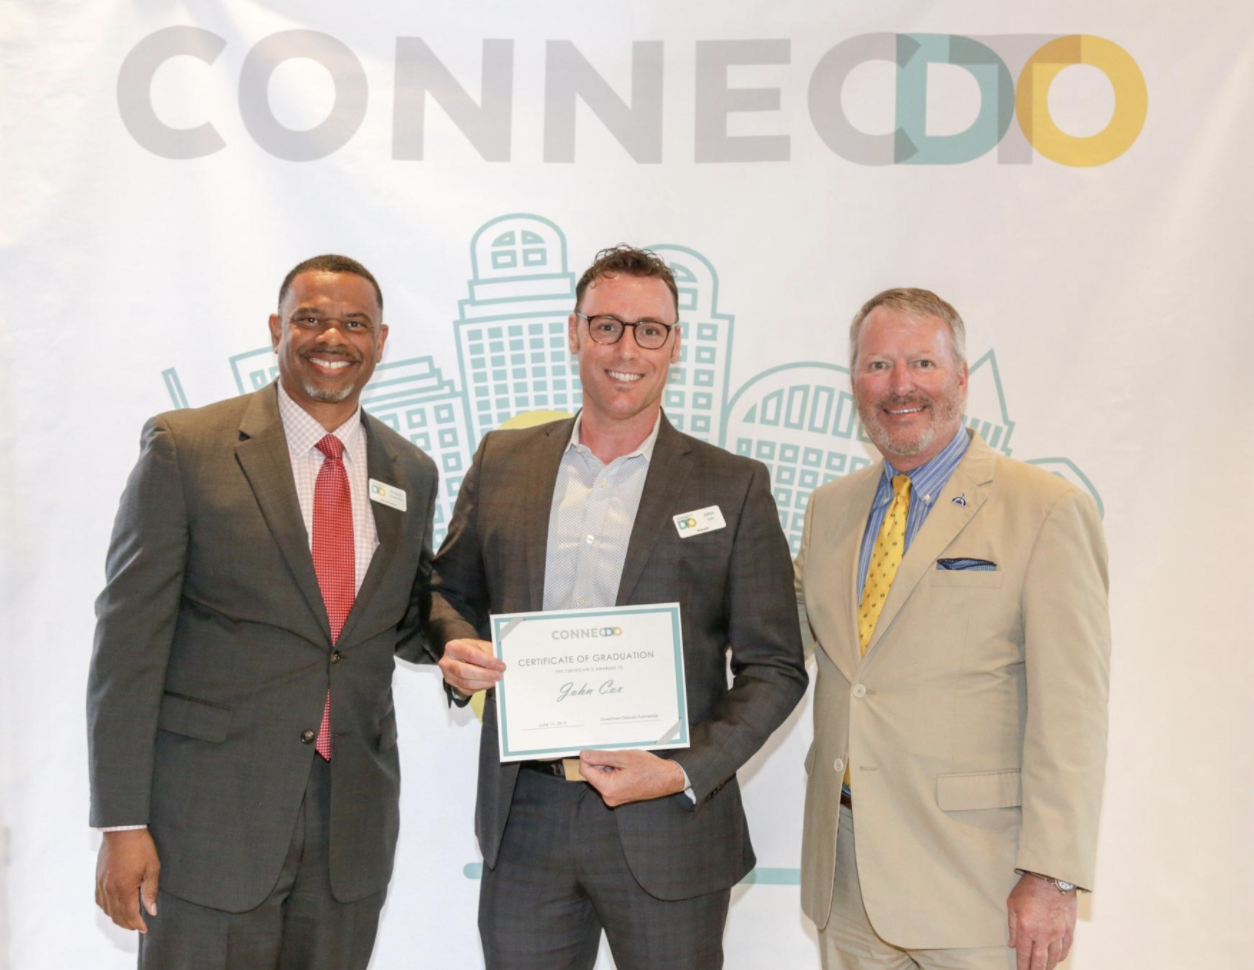 John receives his certificate of graduation with ConnectDTO...